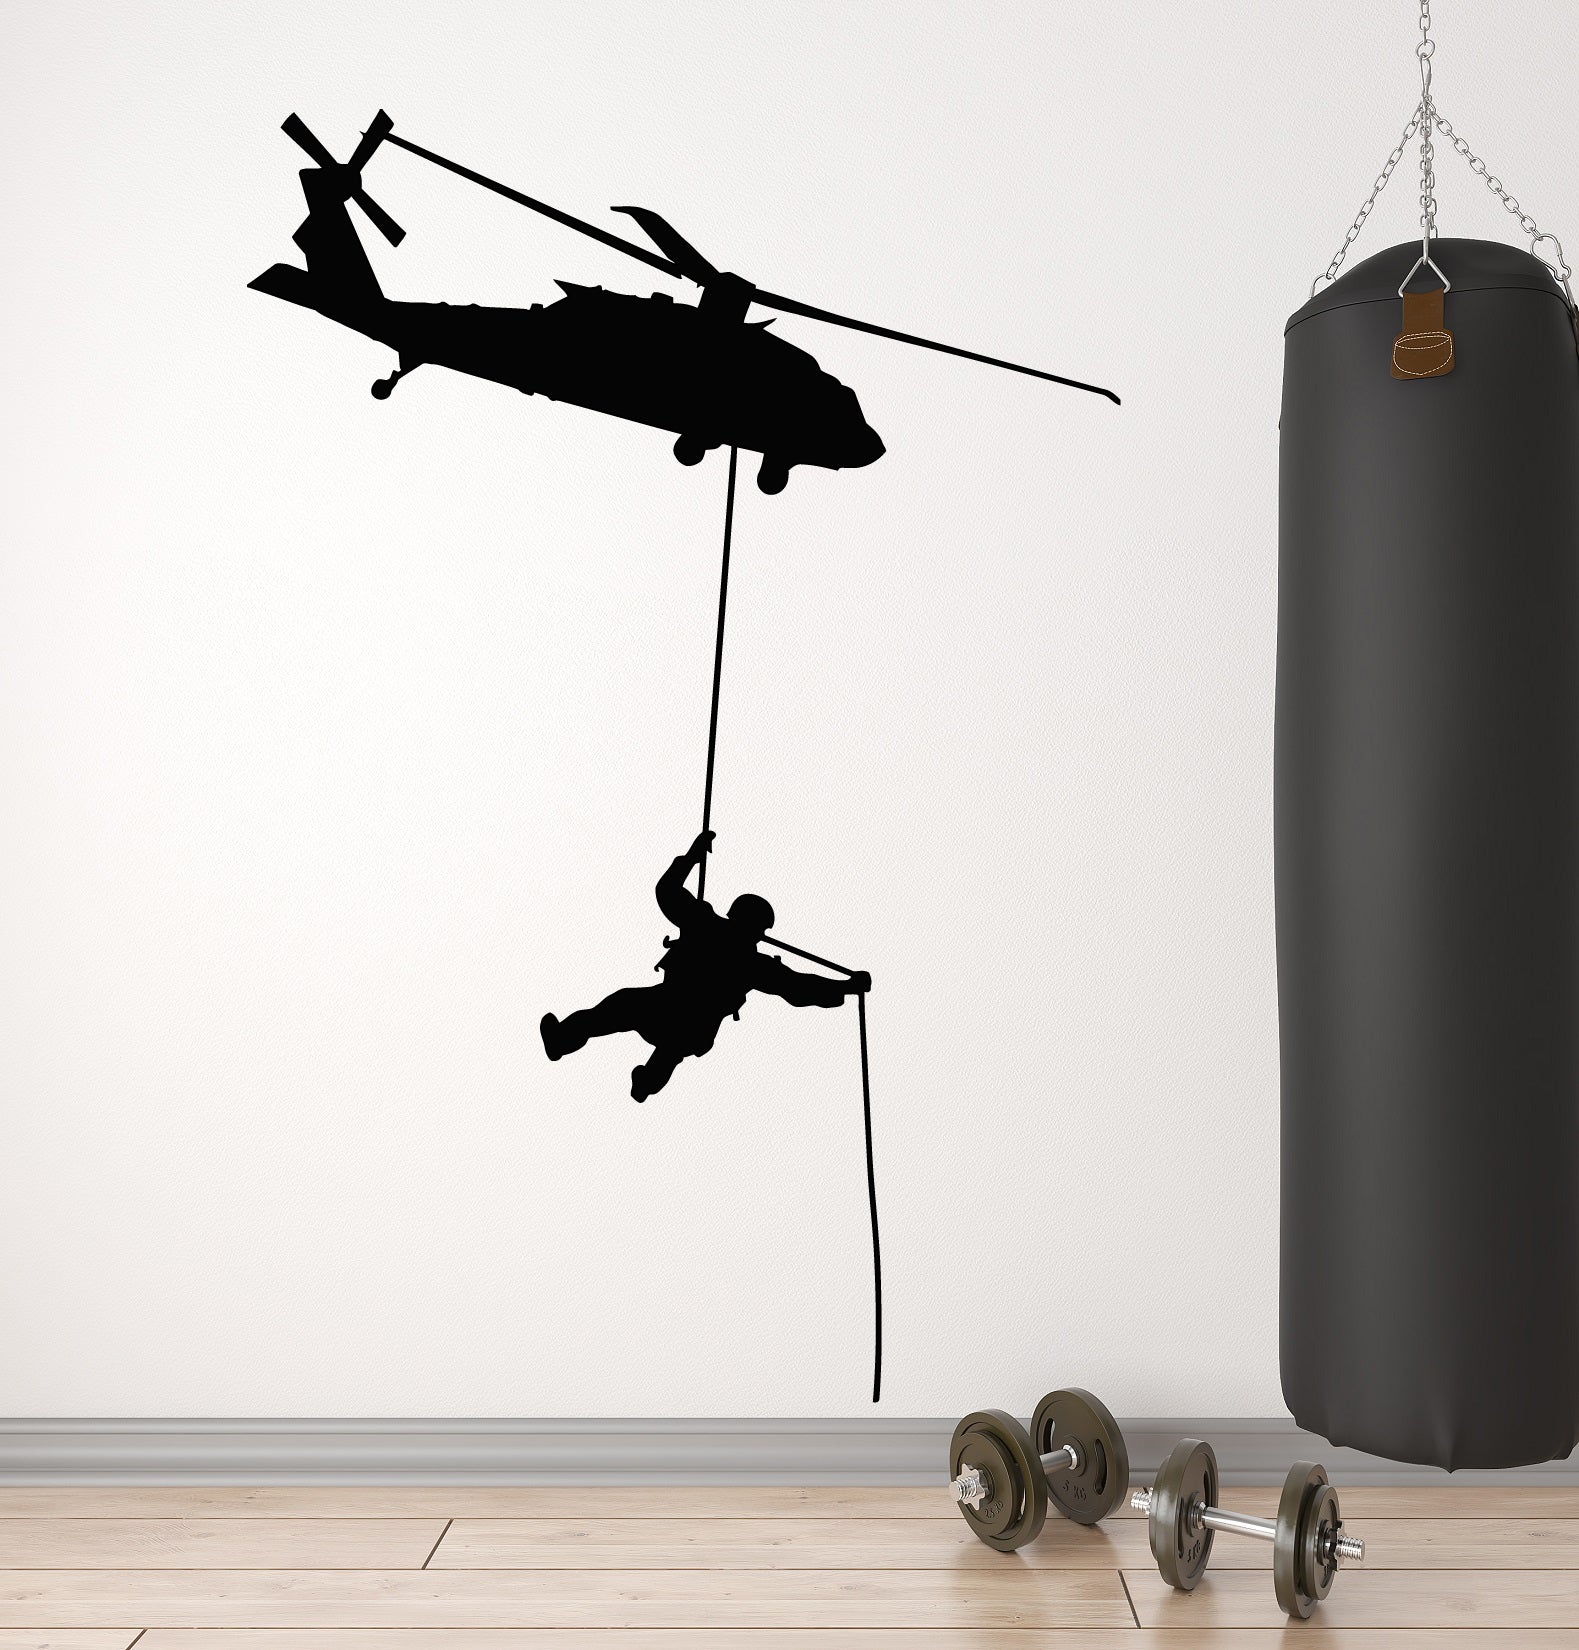 Vinyl Wall Decal Chopper Military Aviation Flight Soldier MIlitary Stickers  Mural (g1208)